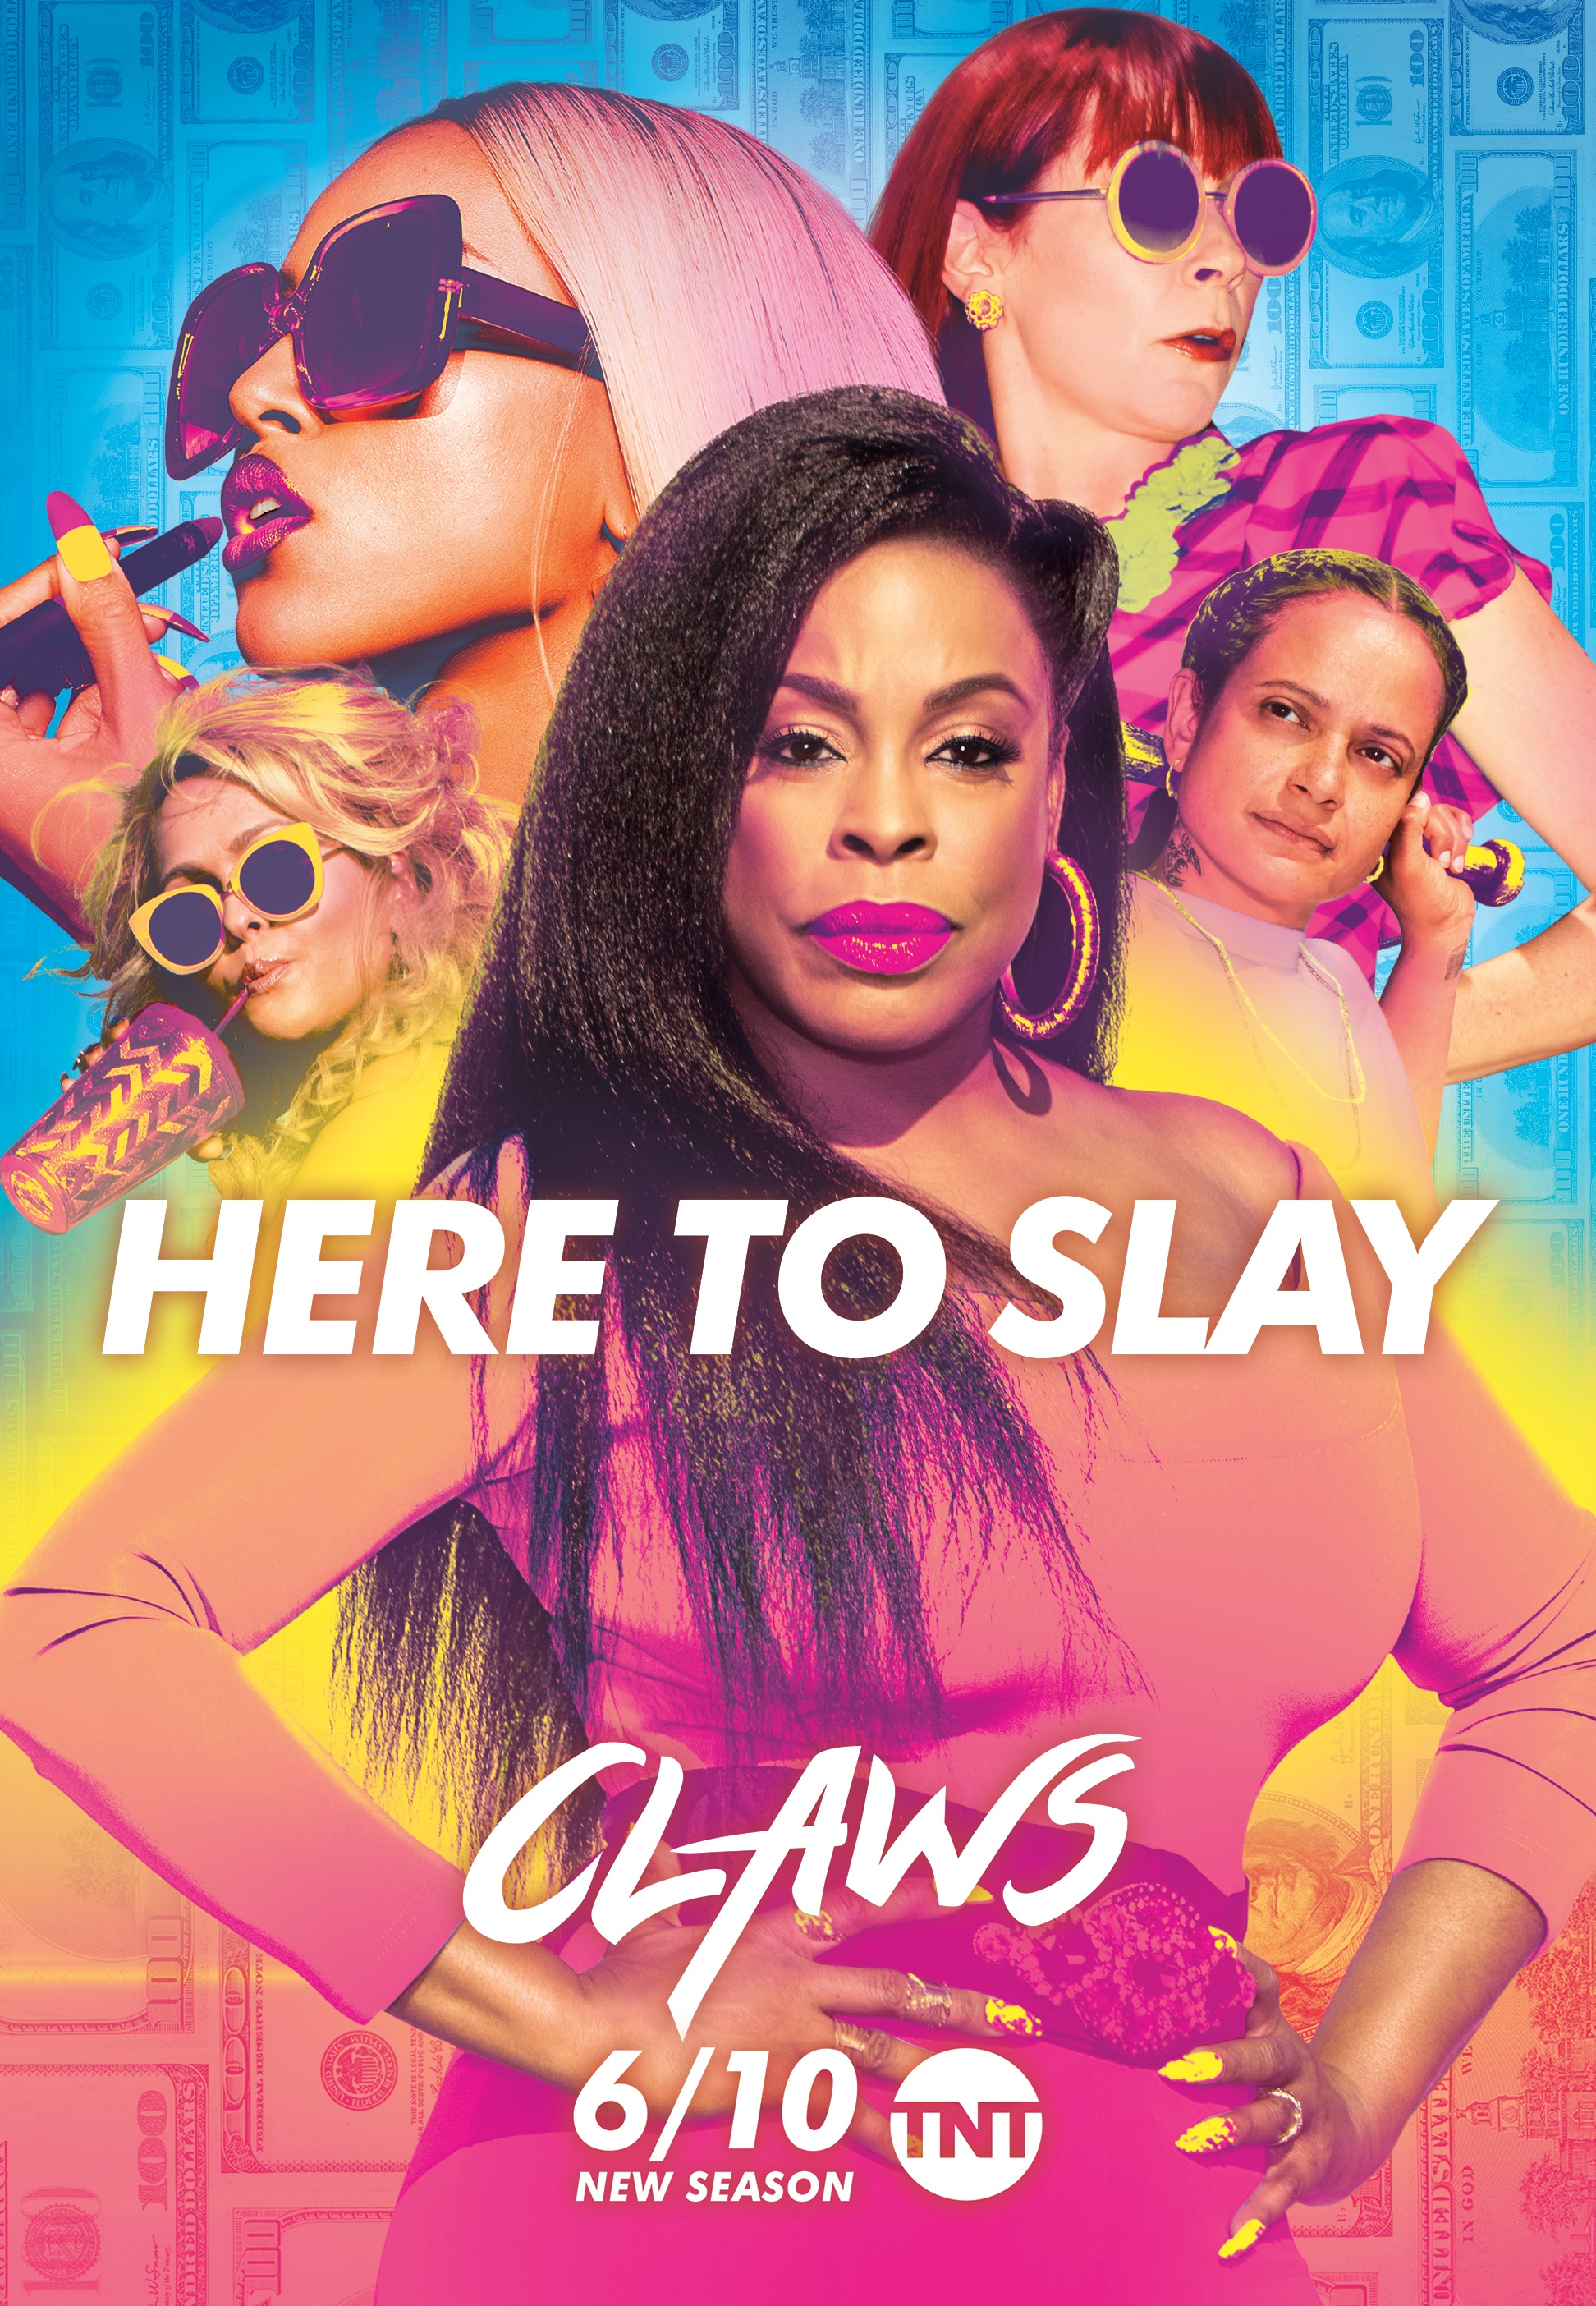 Thumbnail for Claws S2: Queens on Claws